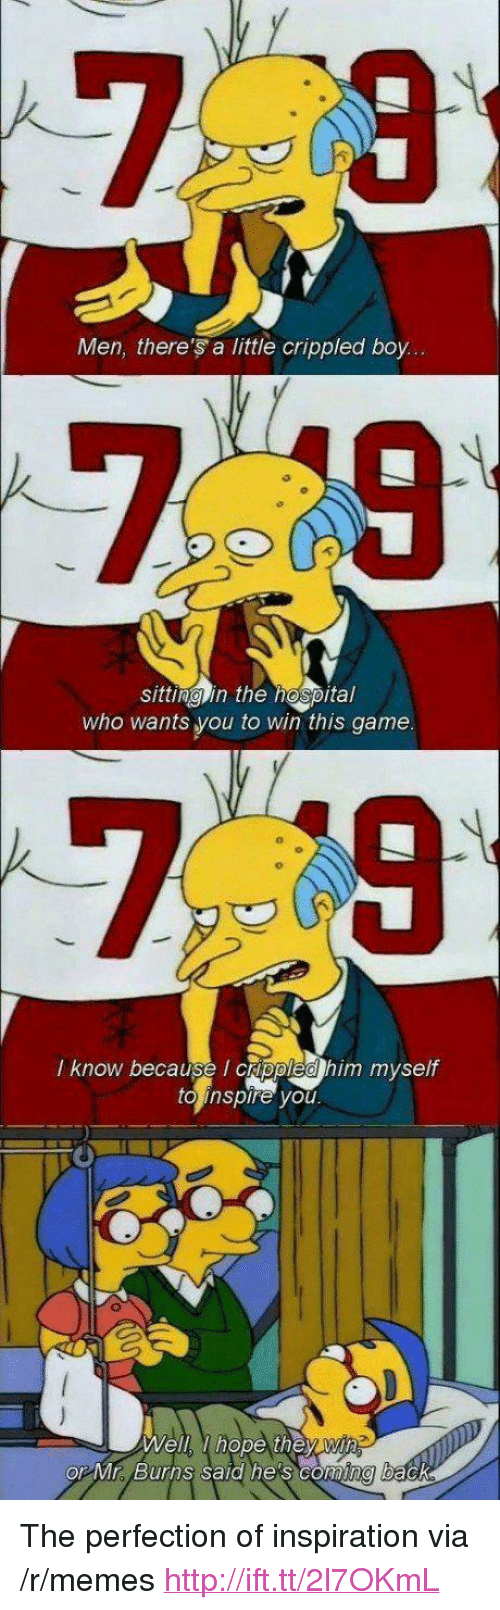 "crippled: Men, there's a little crippled boy...  sittina in the hospital  who wants you to win this game  7 9  l know because I crppled h  im myself  to inspire you  Well, hope they wi  or Mr Burns said he's coming back <p>The perfection of inspiration via /r/memes <a href=""http://ift.tt/2l7OKmL"">http://ift.tt/2l7OKmL</a></p>"